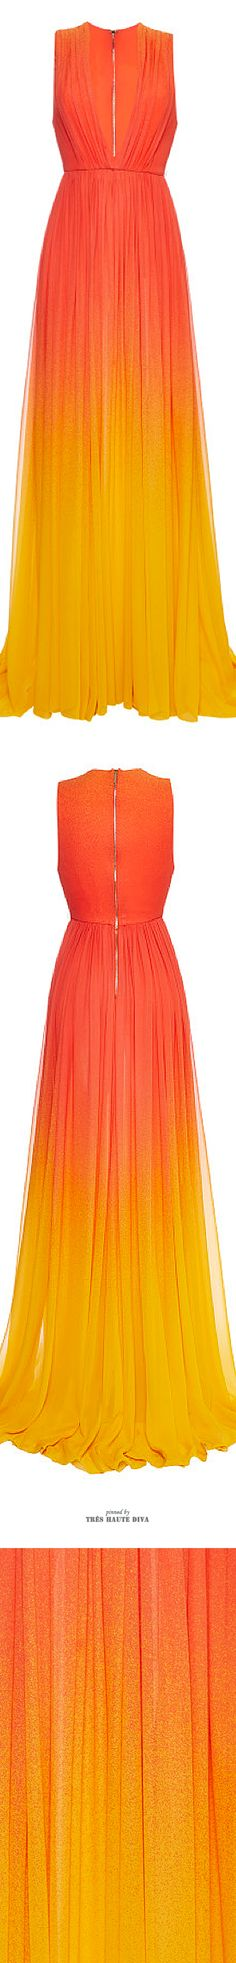 Tequila Sunrise in a dress !!!